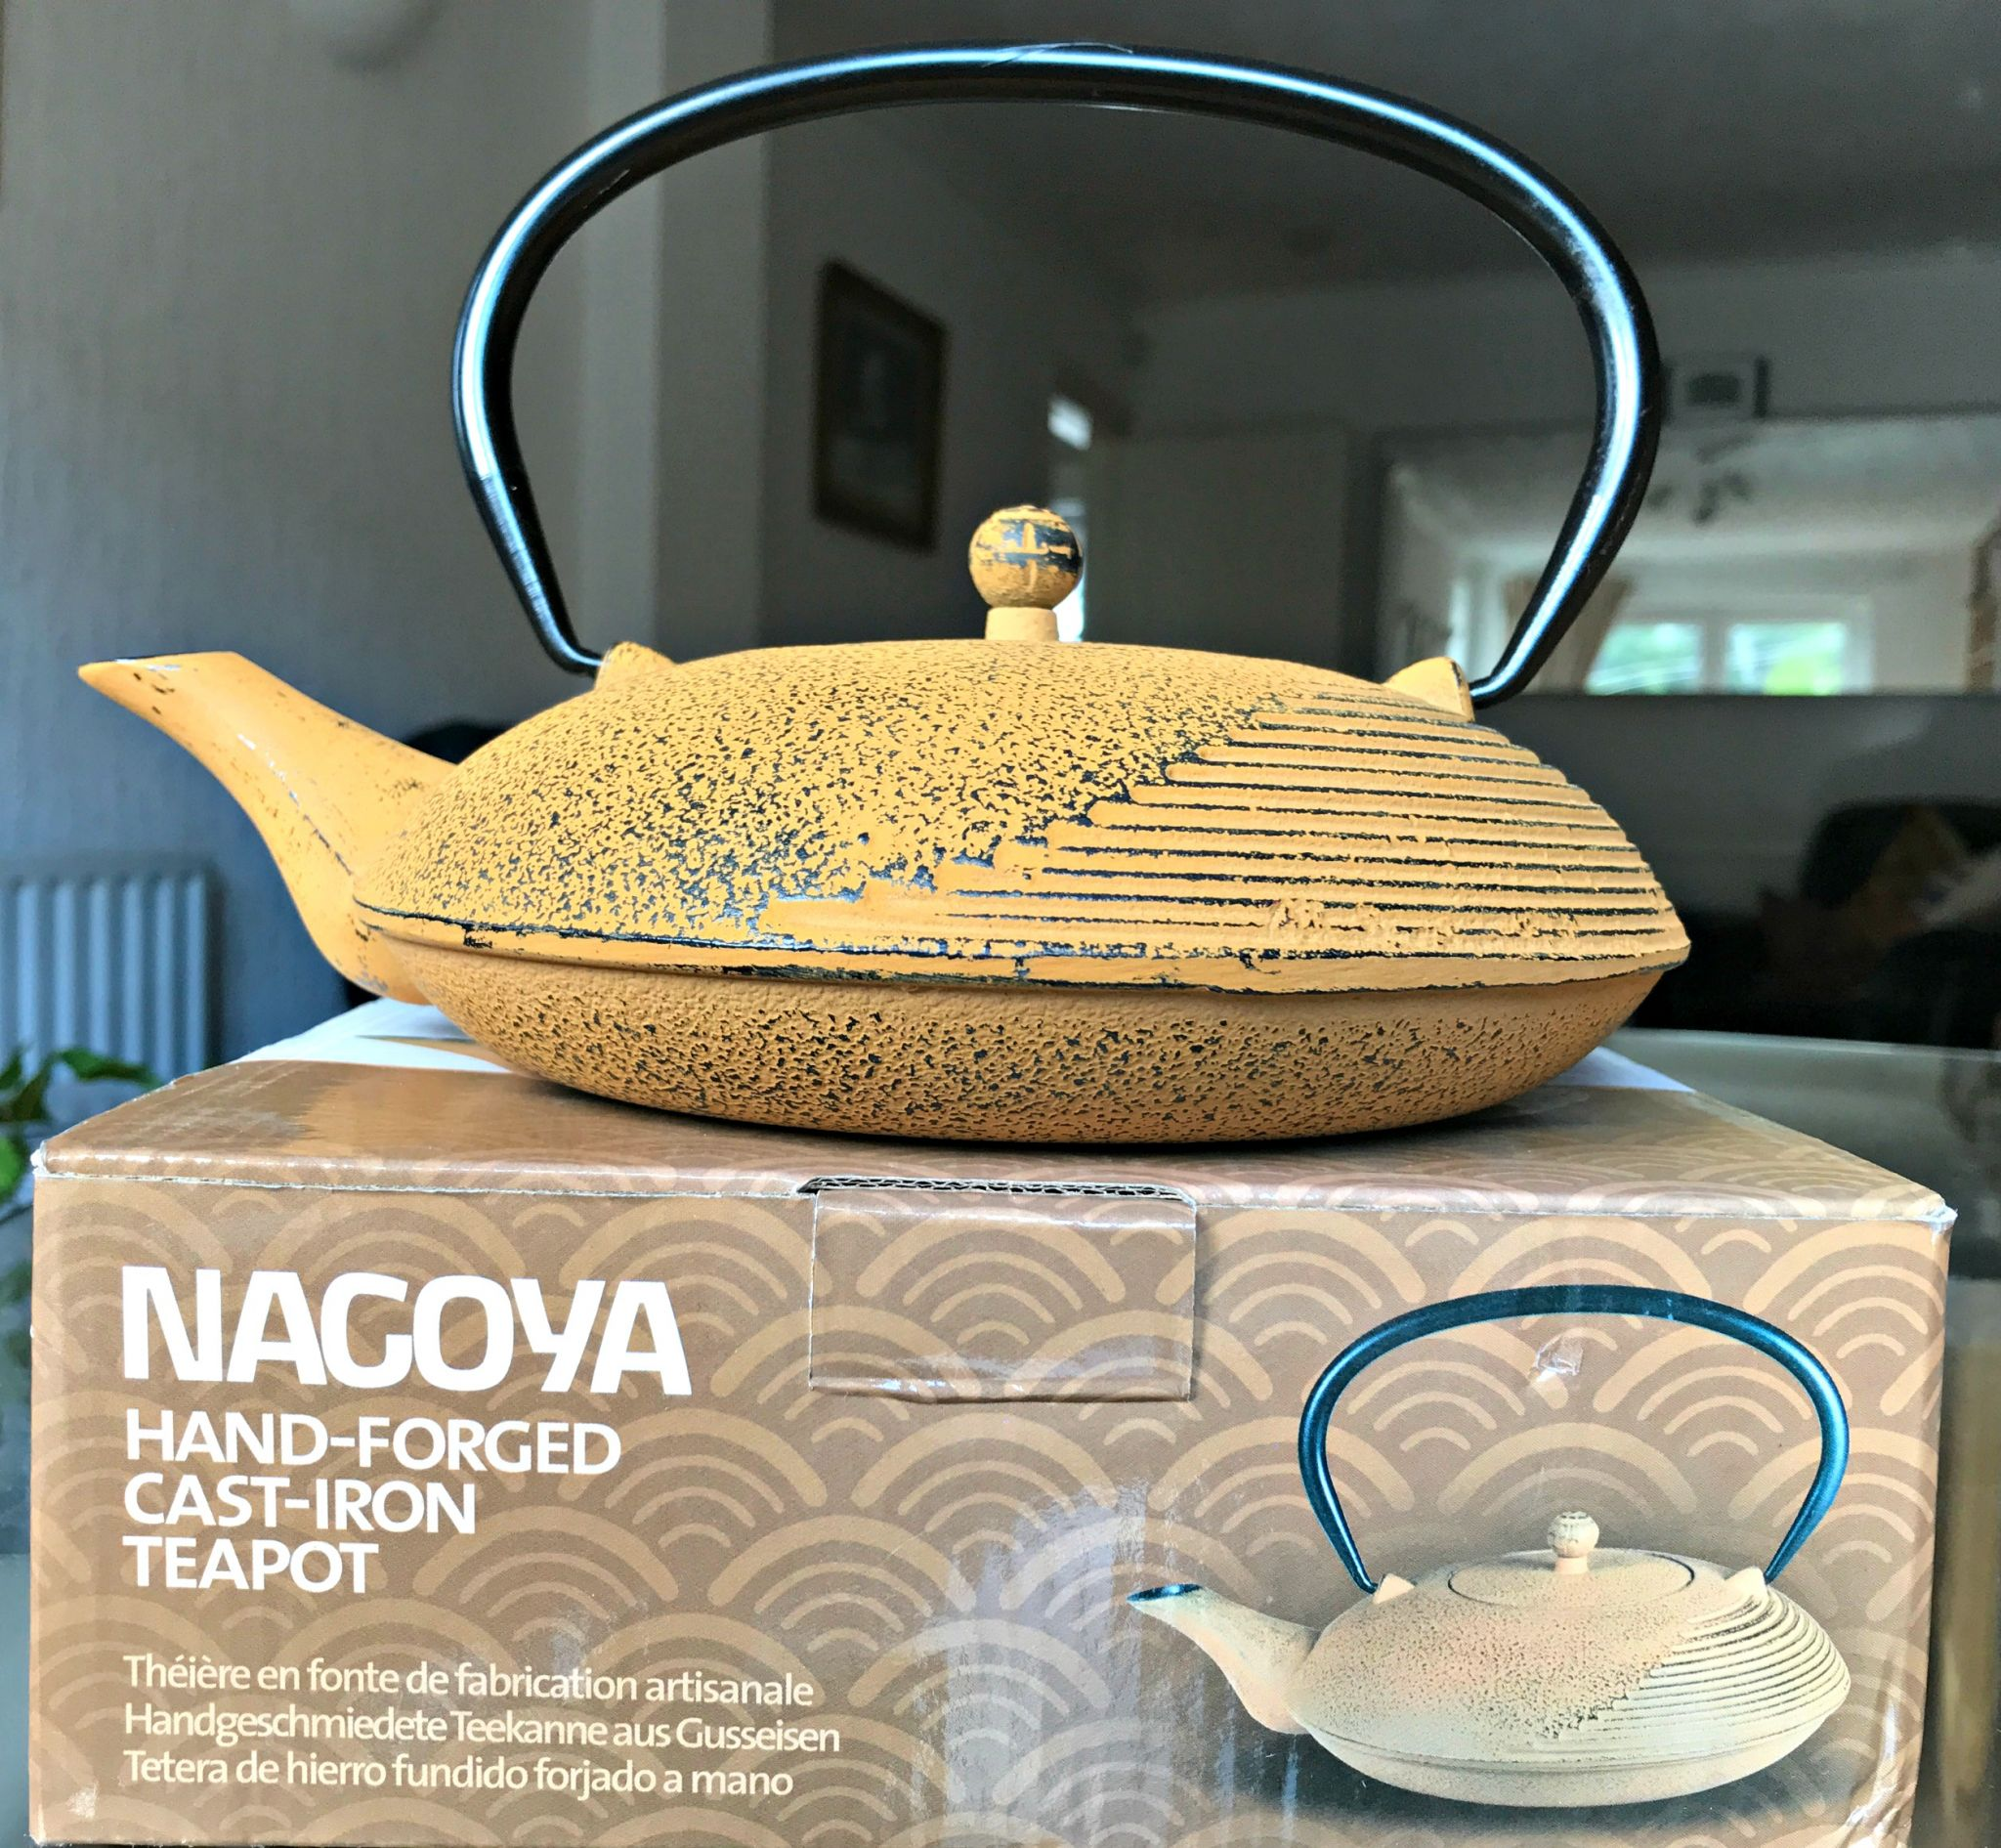 Adagio gourmet tea: Nagoya Hand Forged Cast Iron Teapot